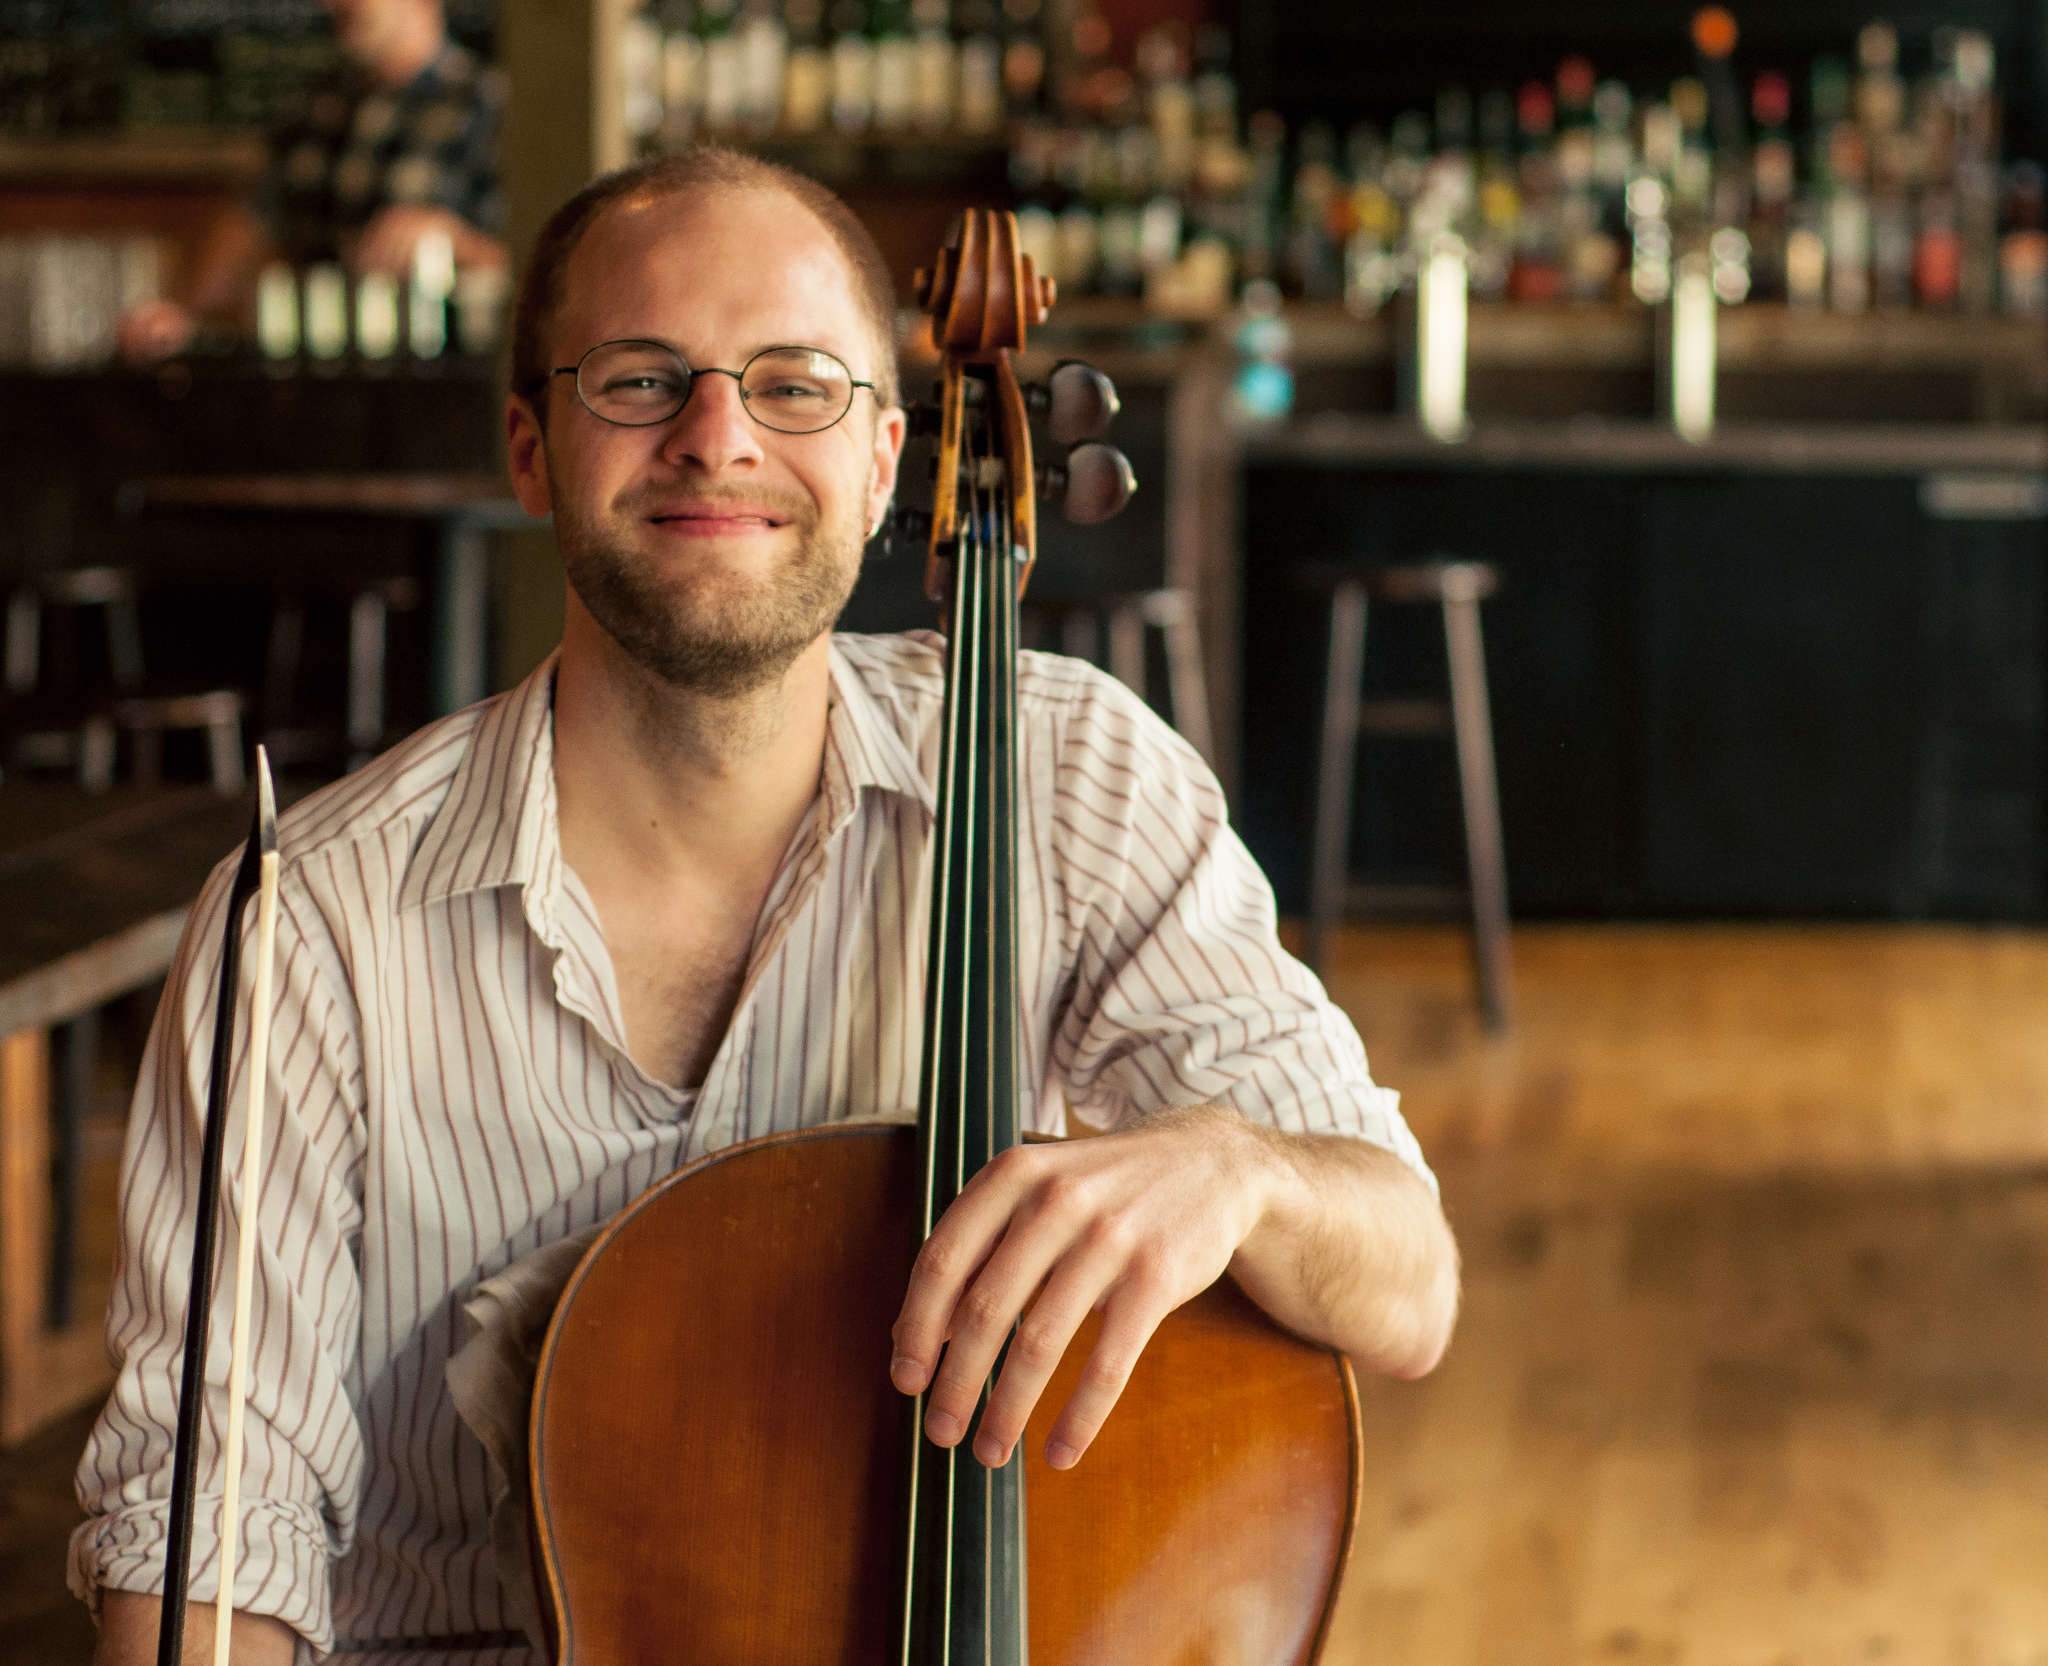 Steuart Pincombe, devoted to presenting classical works in unique venues, played baroque cello at Dock Street Brewery.